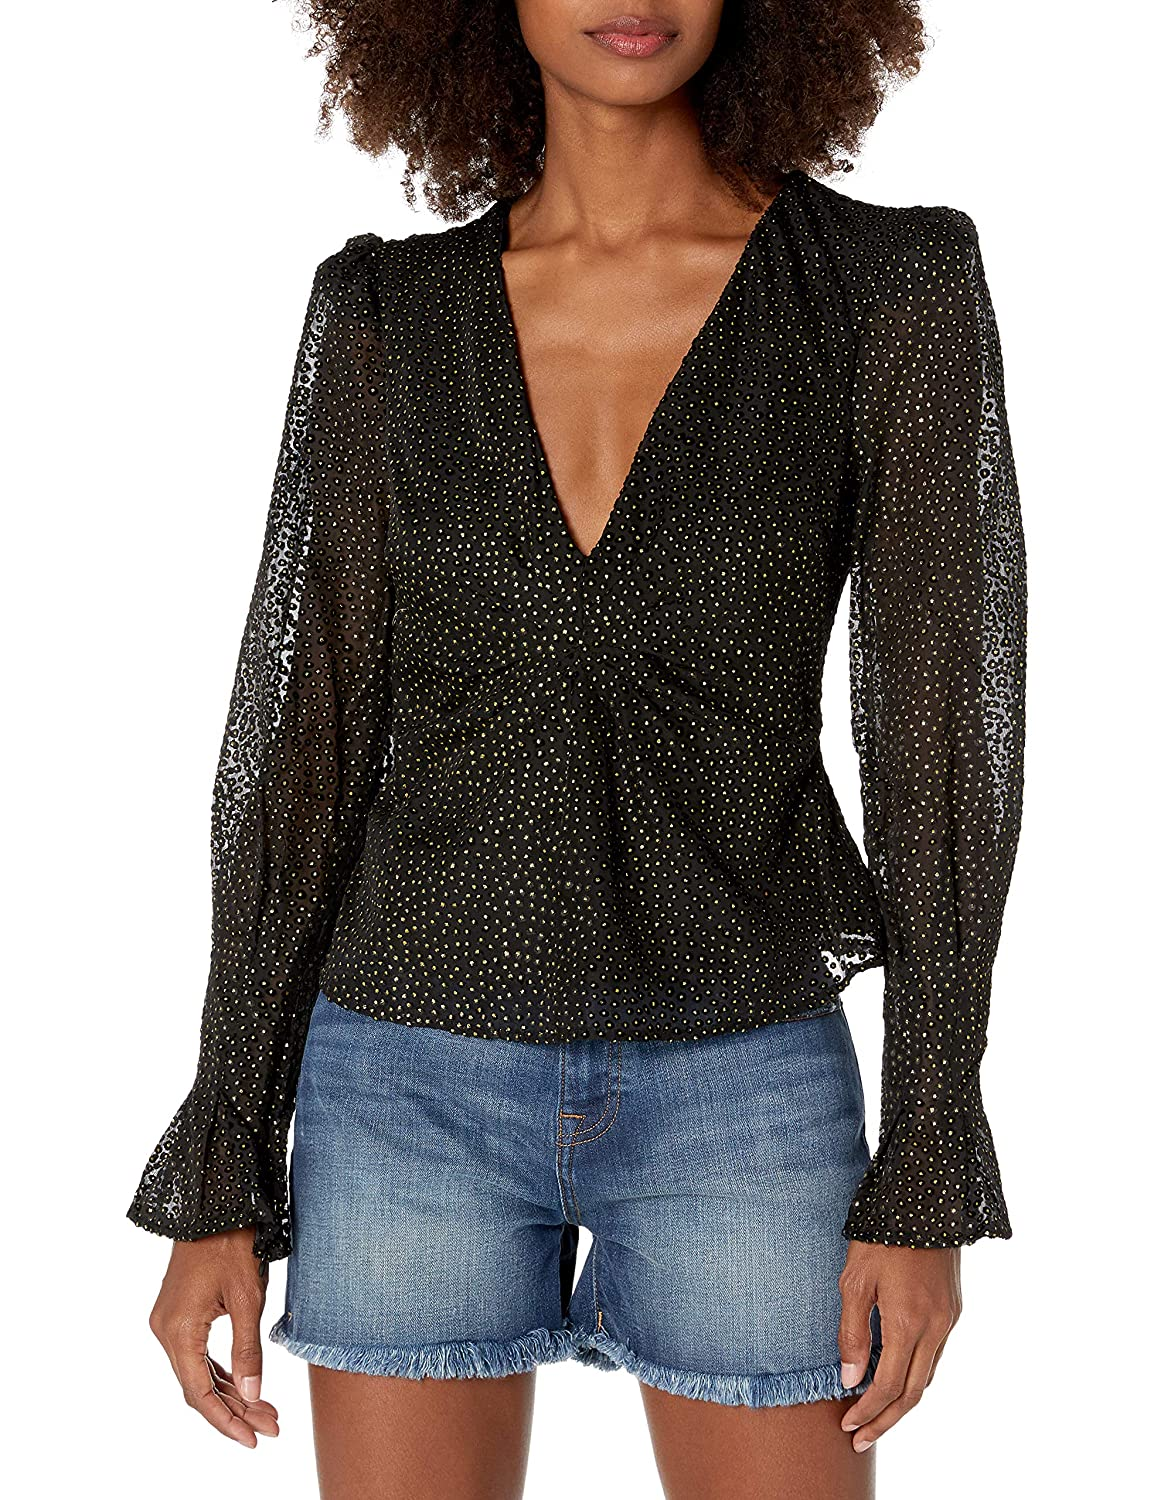 House of Harlow 1960 Womens Anisa Blouse